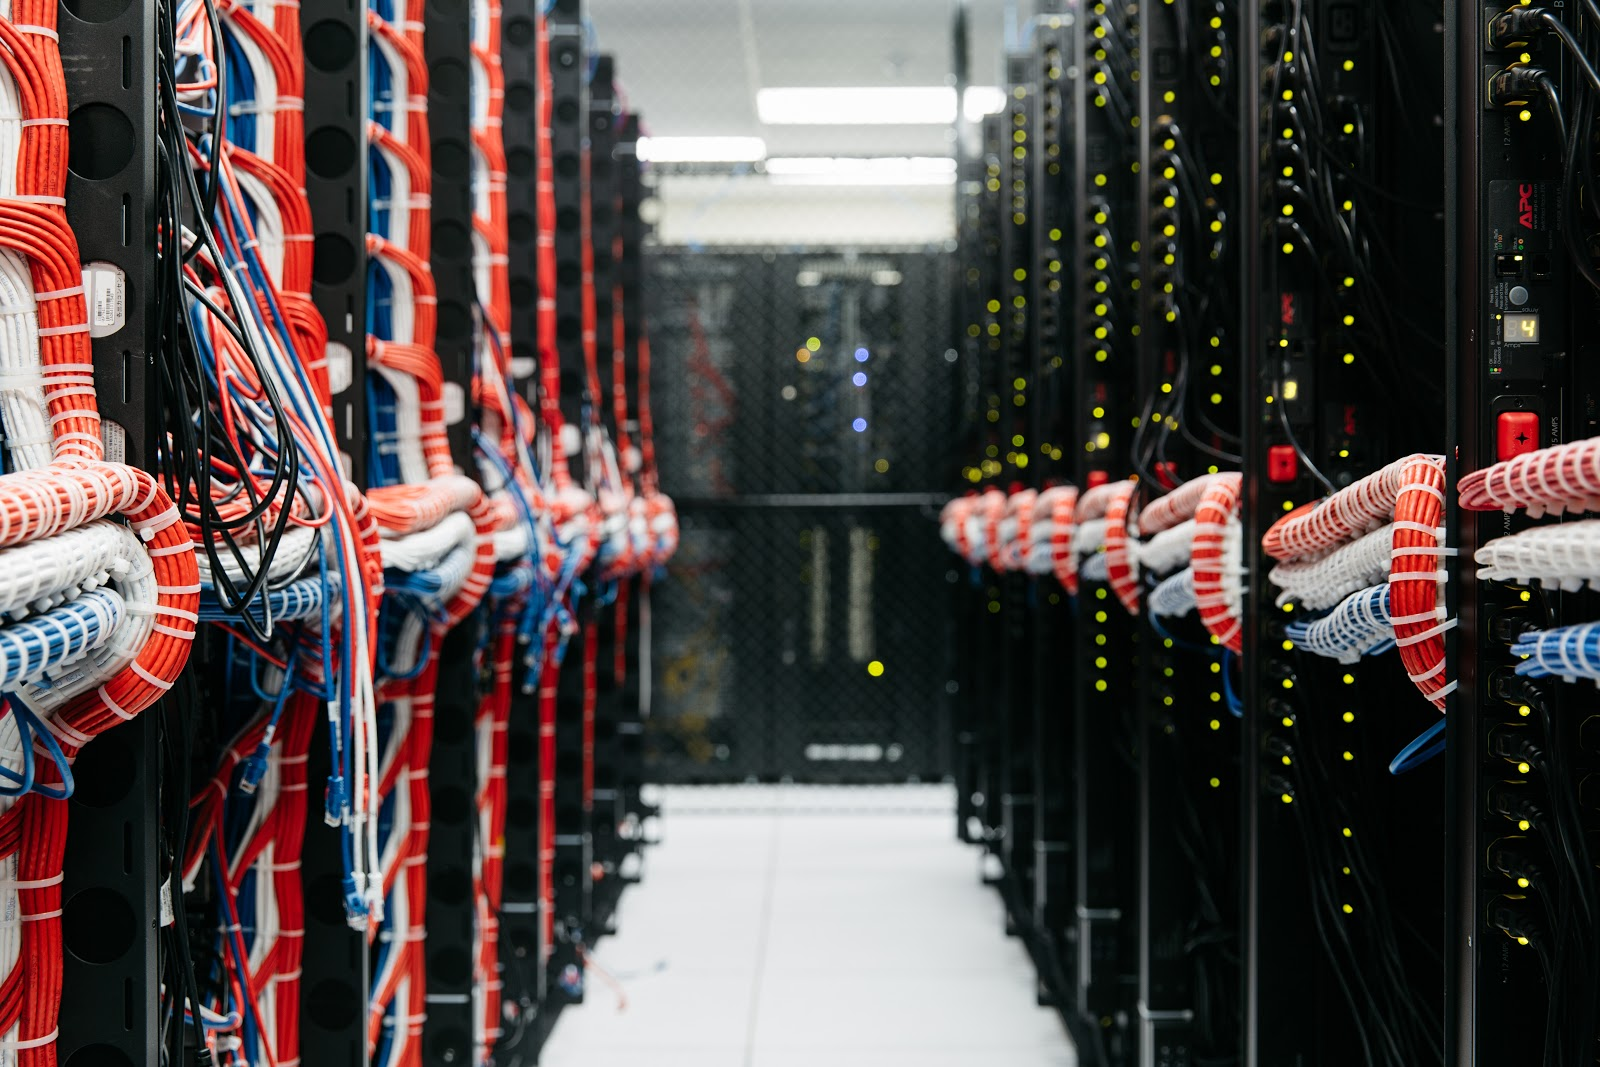 Rows of server cabinets within a Hivelocity data center